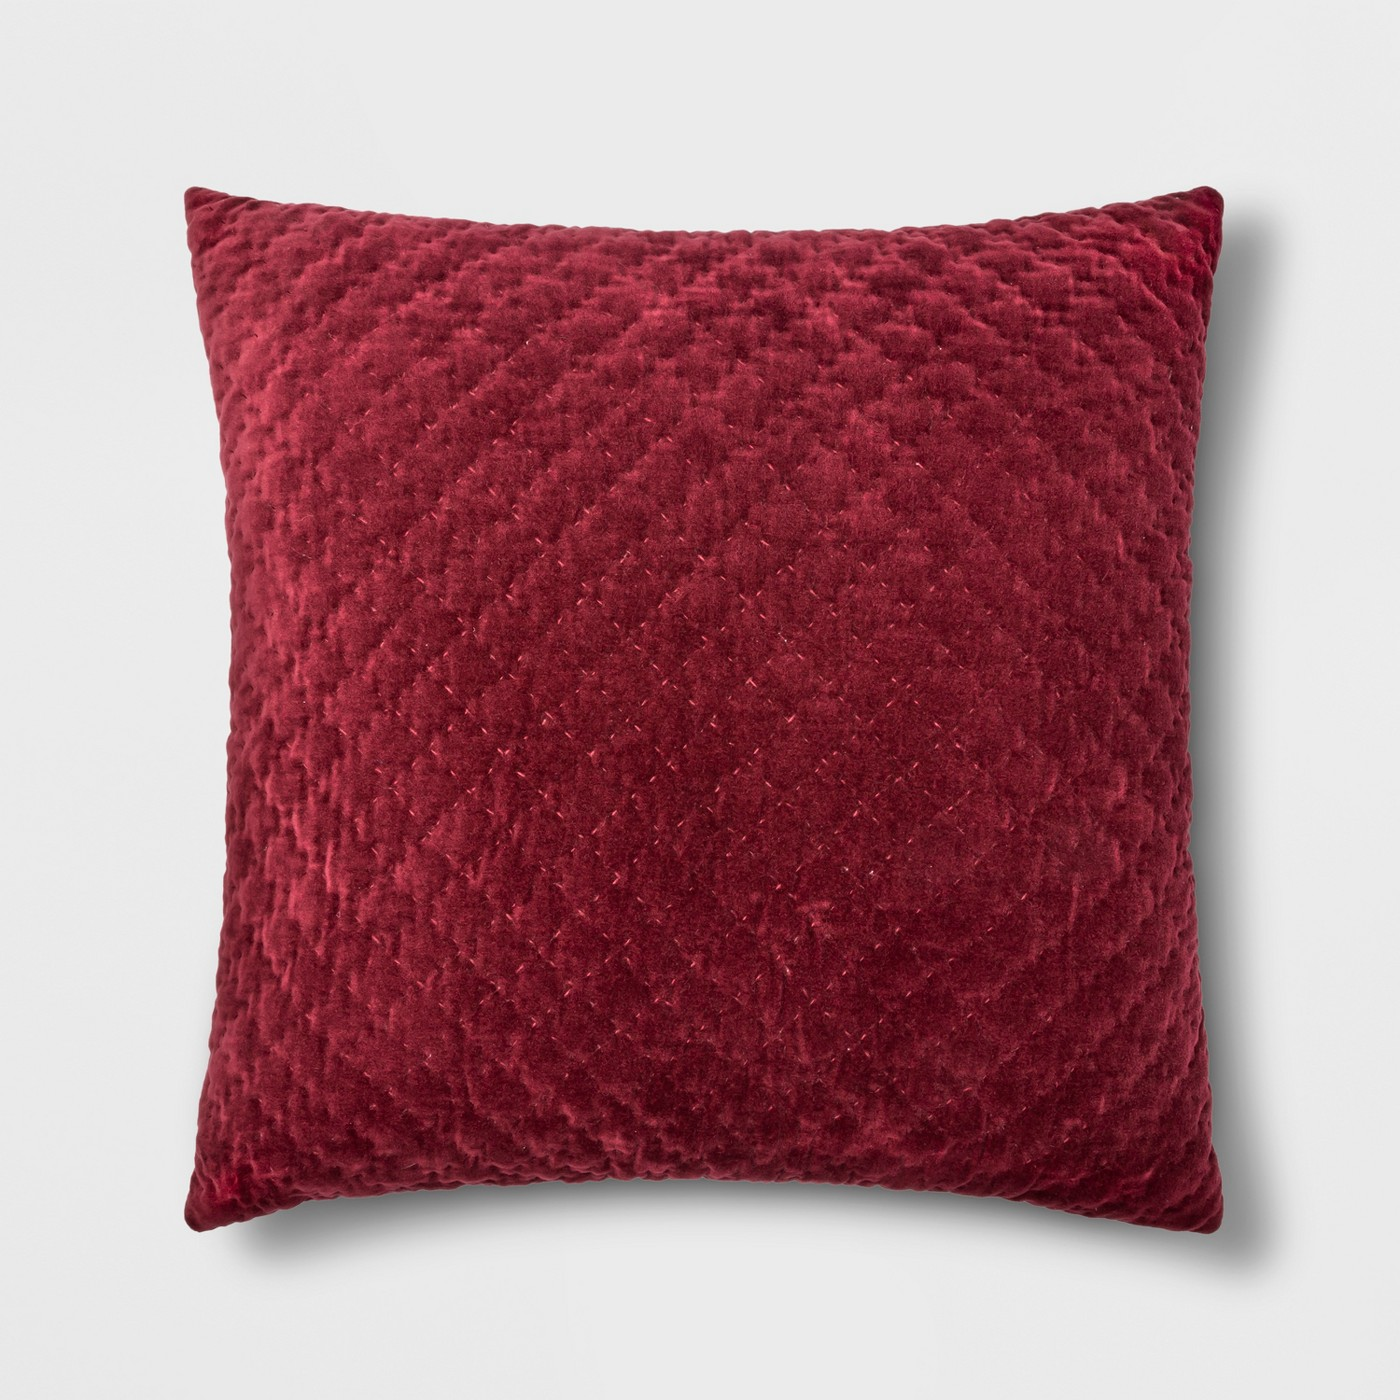 Hand Quilted Velvet With Zipper Closure Oversize Square Throw Pillow - Threshold™ - image 1 of 2